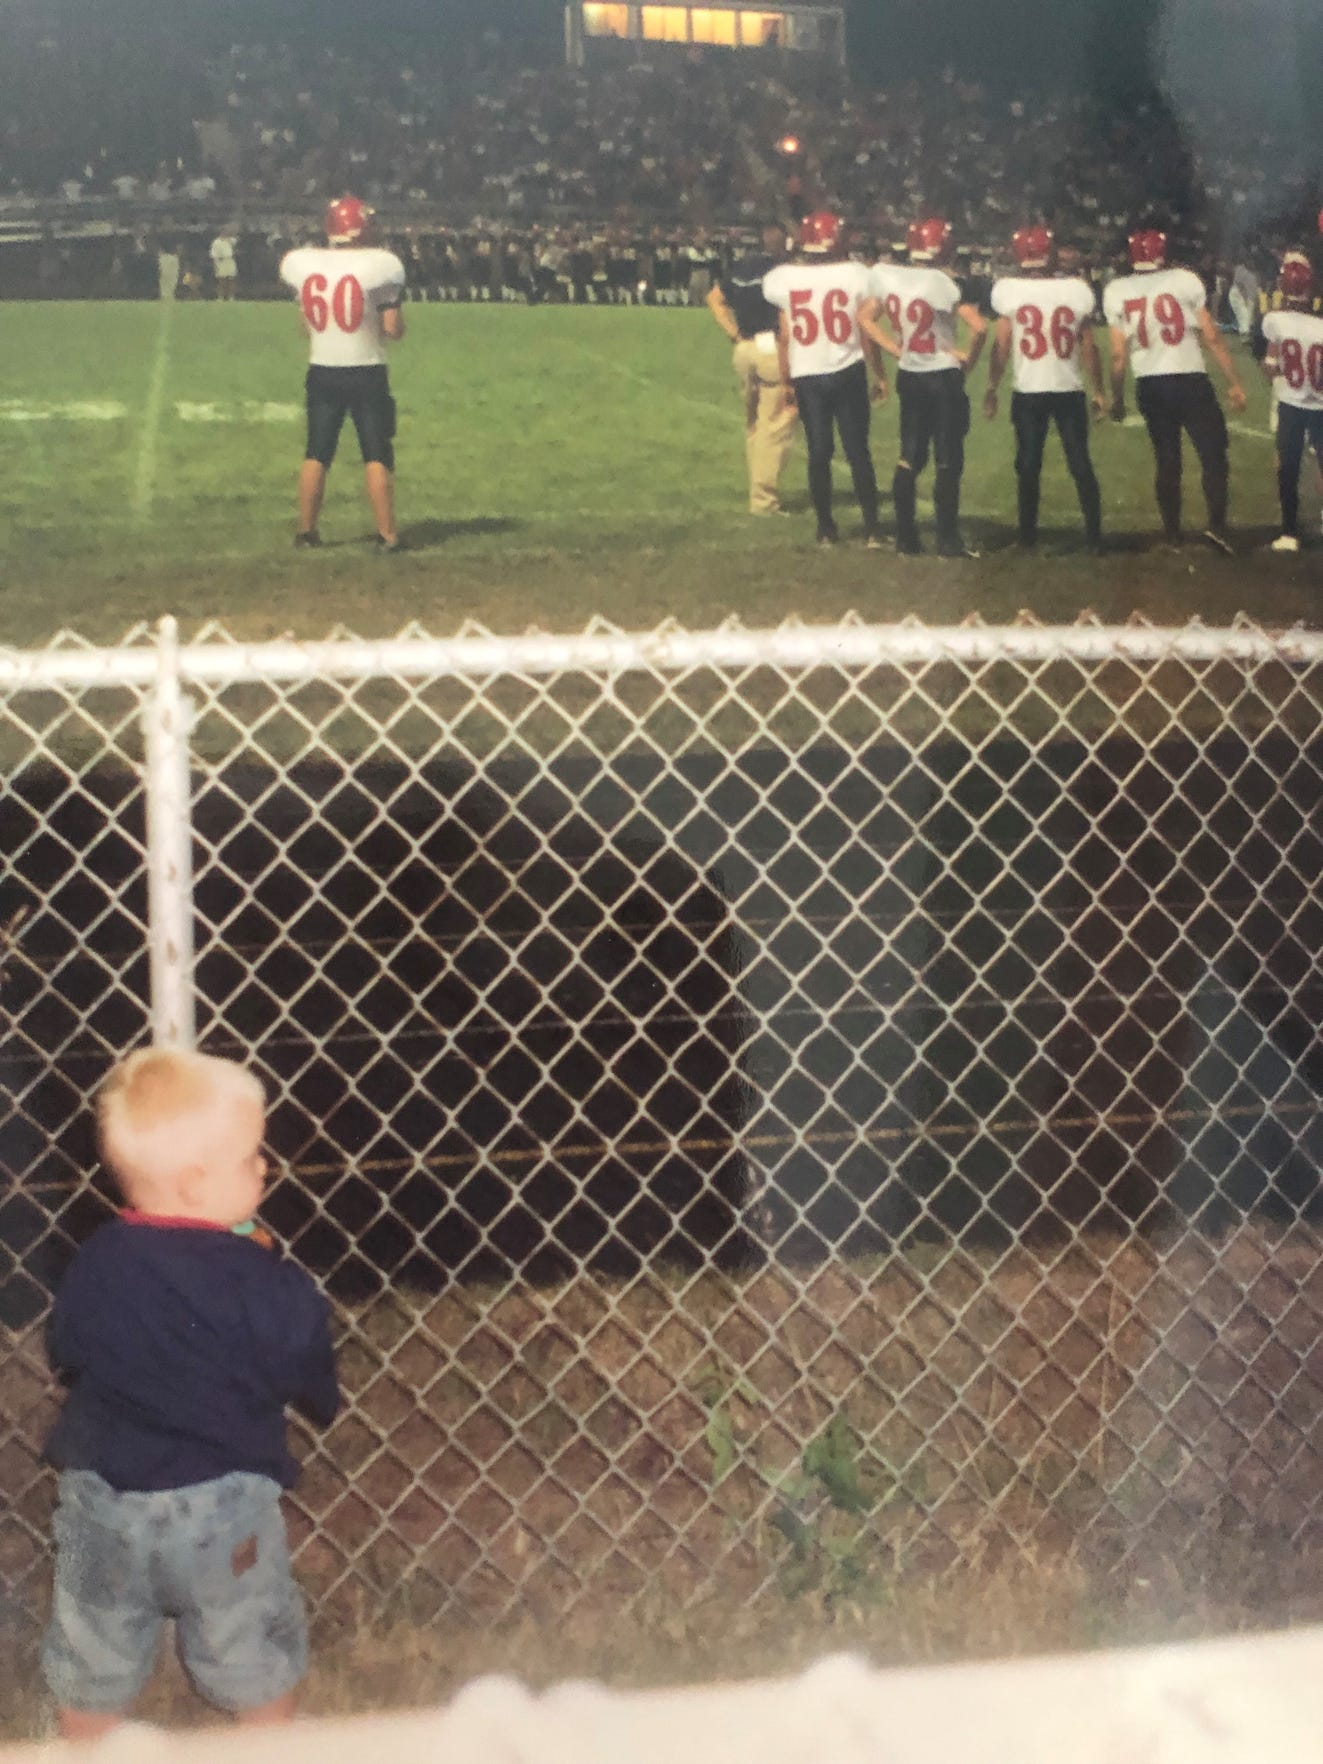 Jake Kelbert stands behind the fence, watching his father Chris Kelbert coach on the sideline.